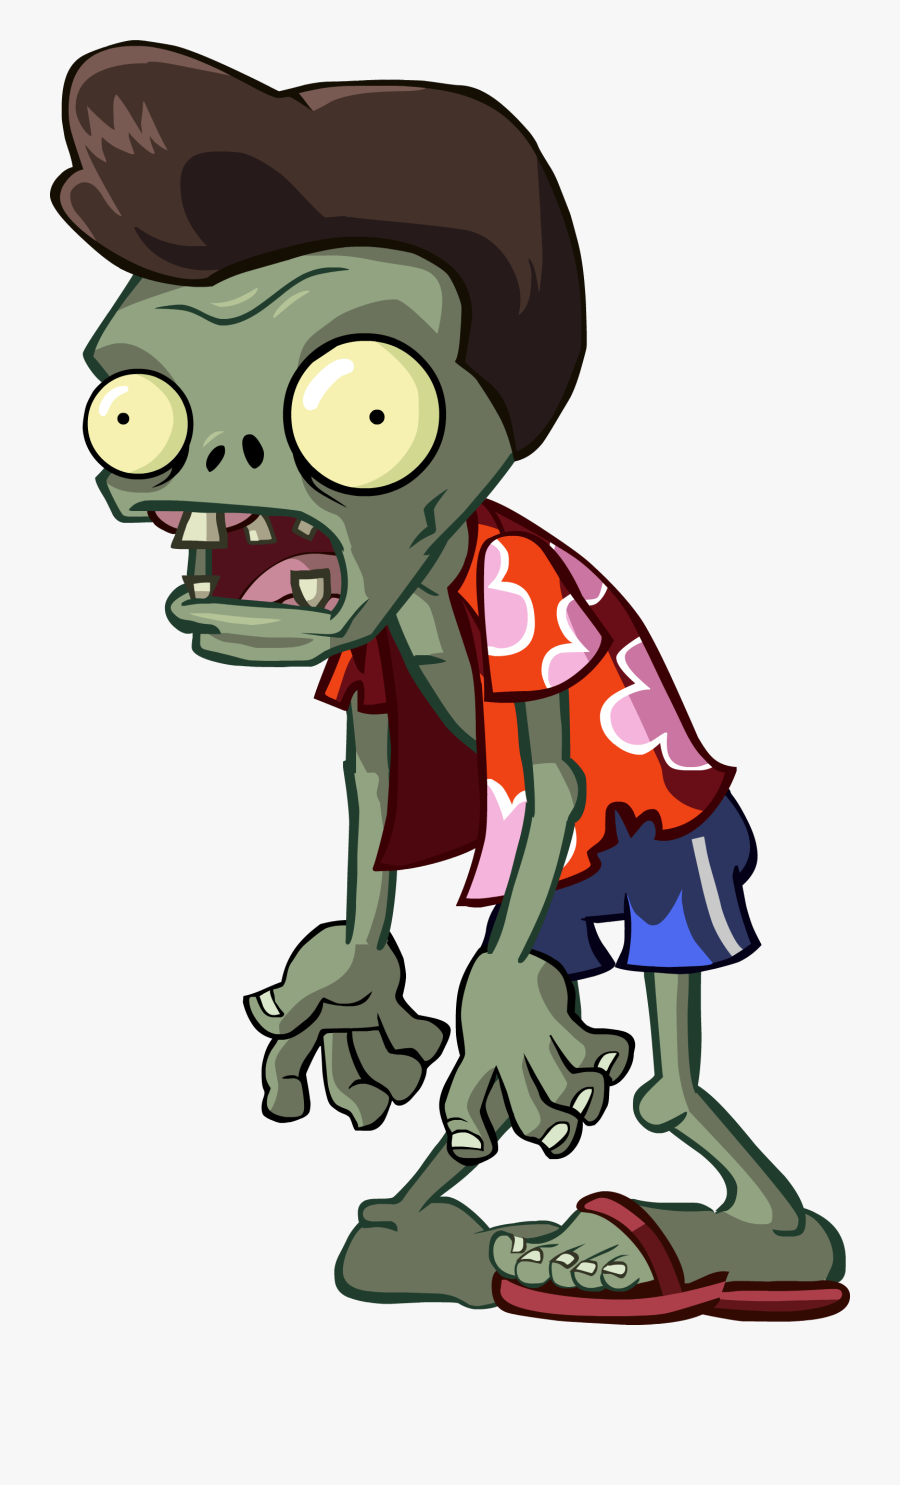 Thumb Image - Plants Vs Zombies 2 Characters Zombies, Transparent Clipart